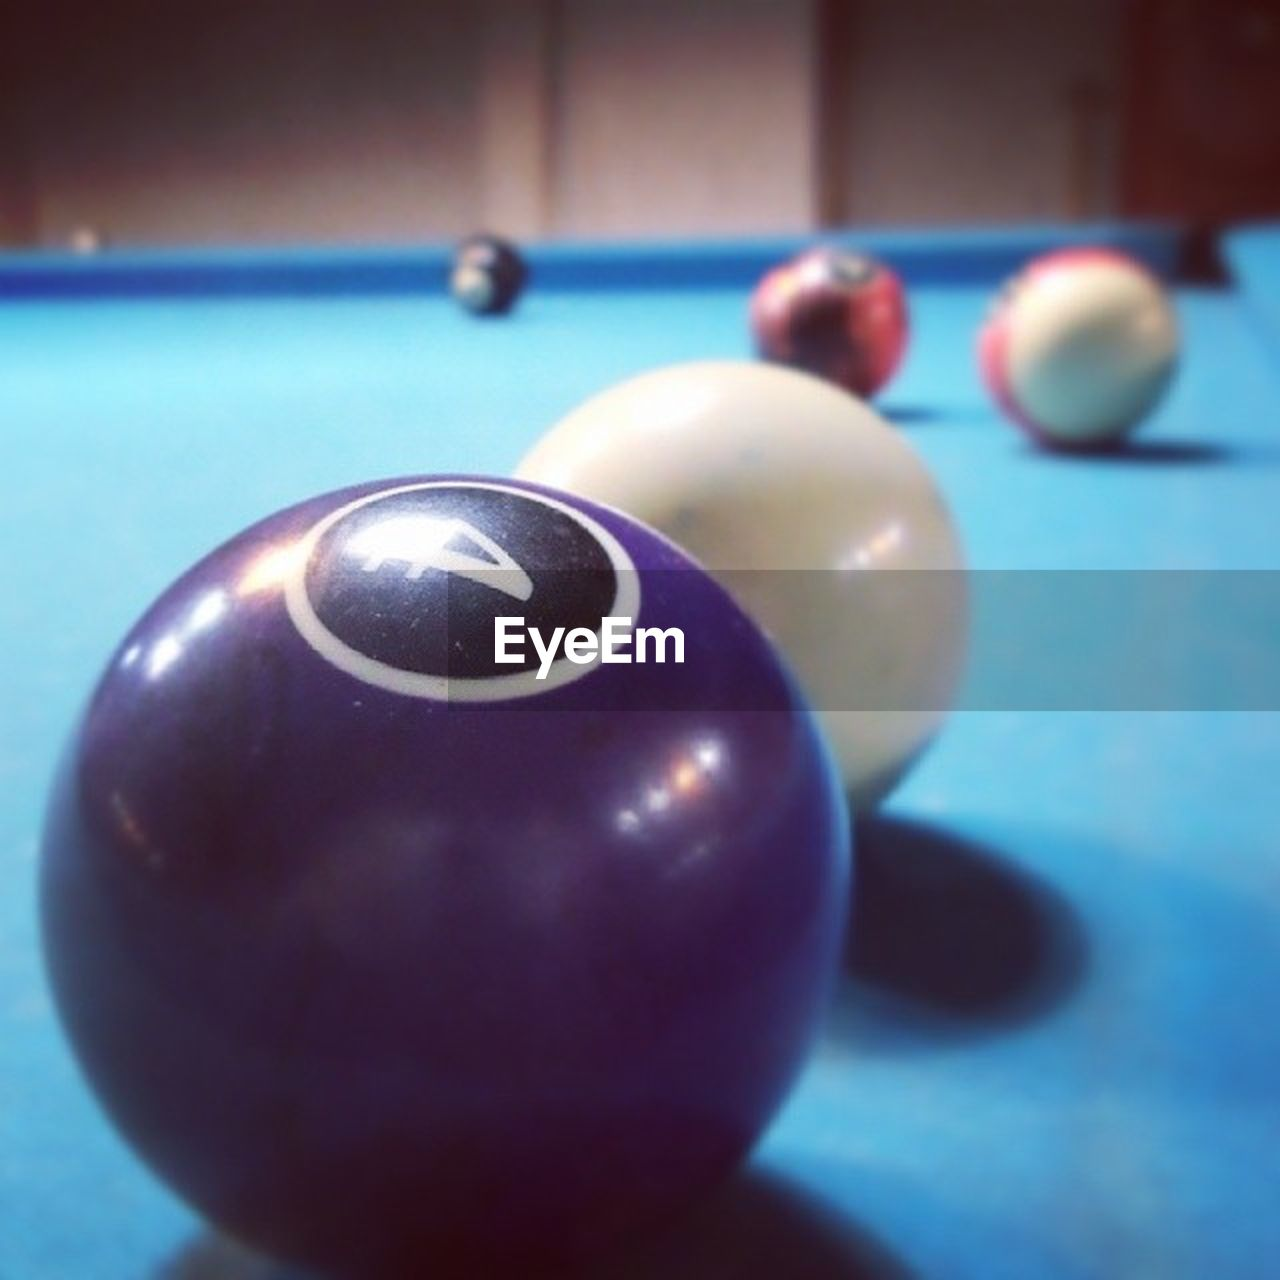 pool ball, pool table, pool - cue sport, sport, snooker ball, focus on foreground, still life, snooker, indoors, table, close-up, sports equipment, no people, ball, cue ball, pool cue, snooker and pool, day